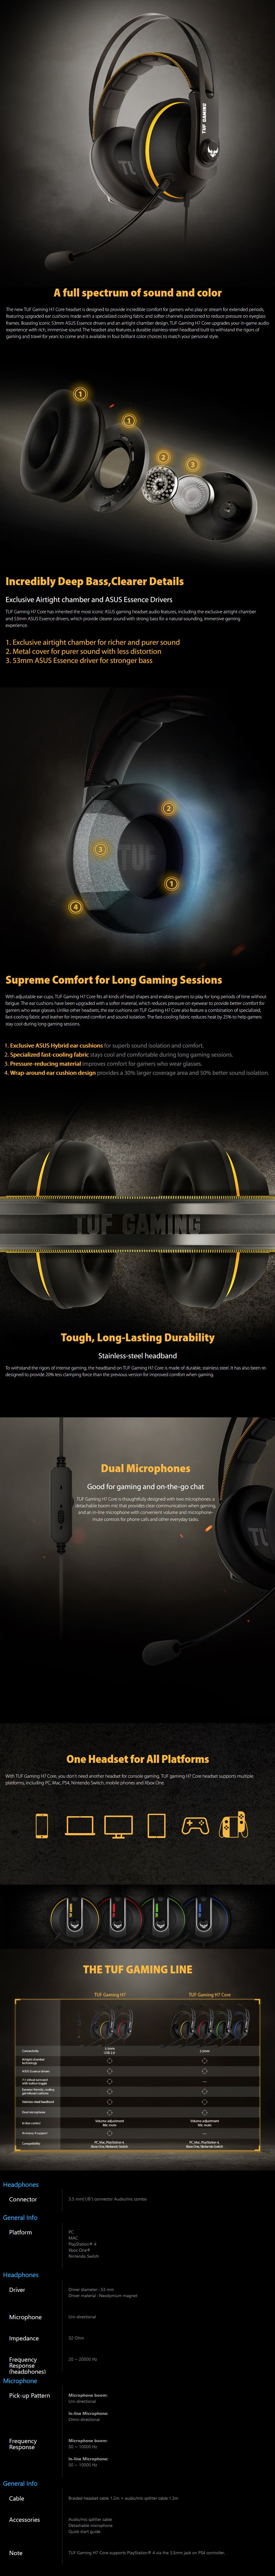 asus-tuf-gaming-h7-core-gaming-headset-yellow-ac27034-1.jpg